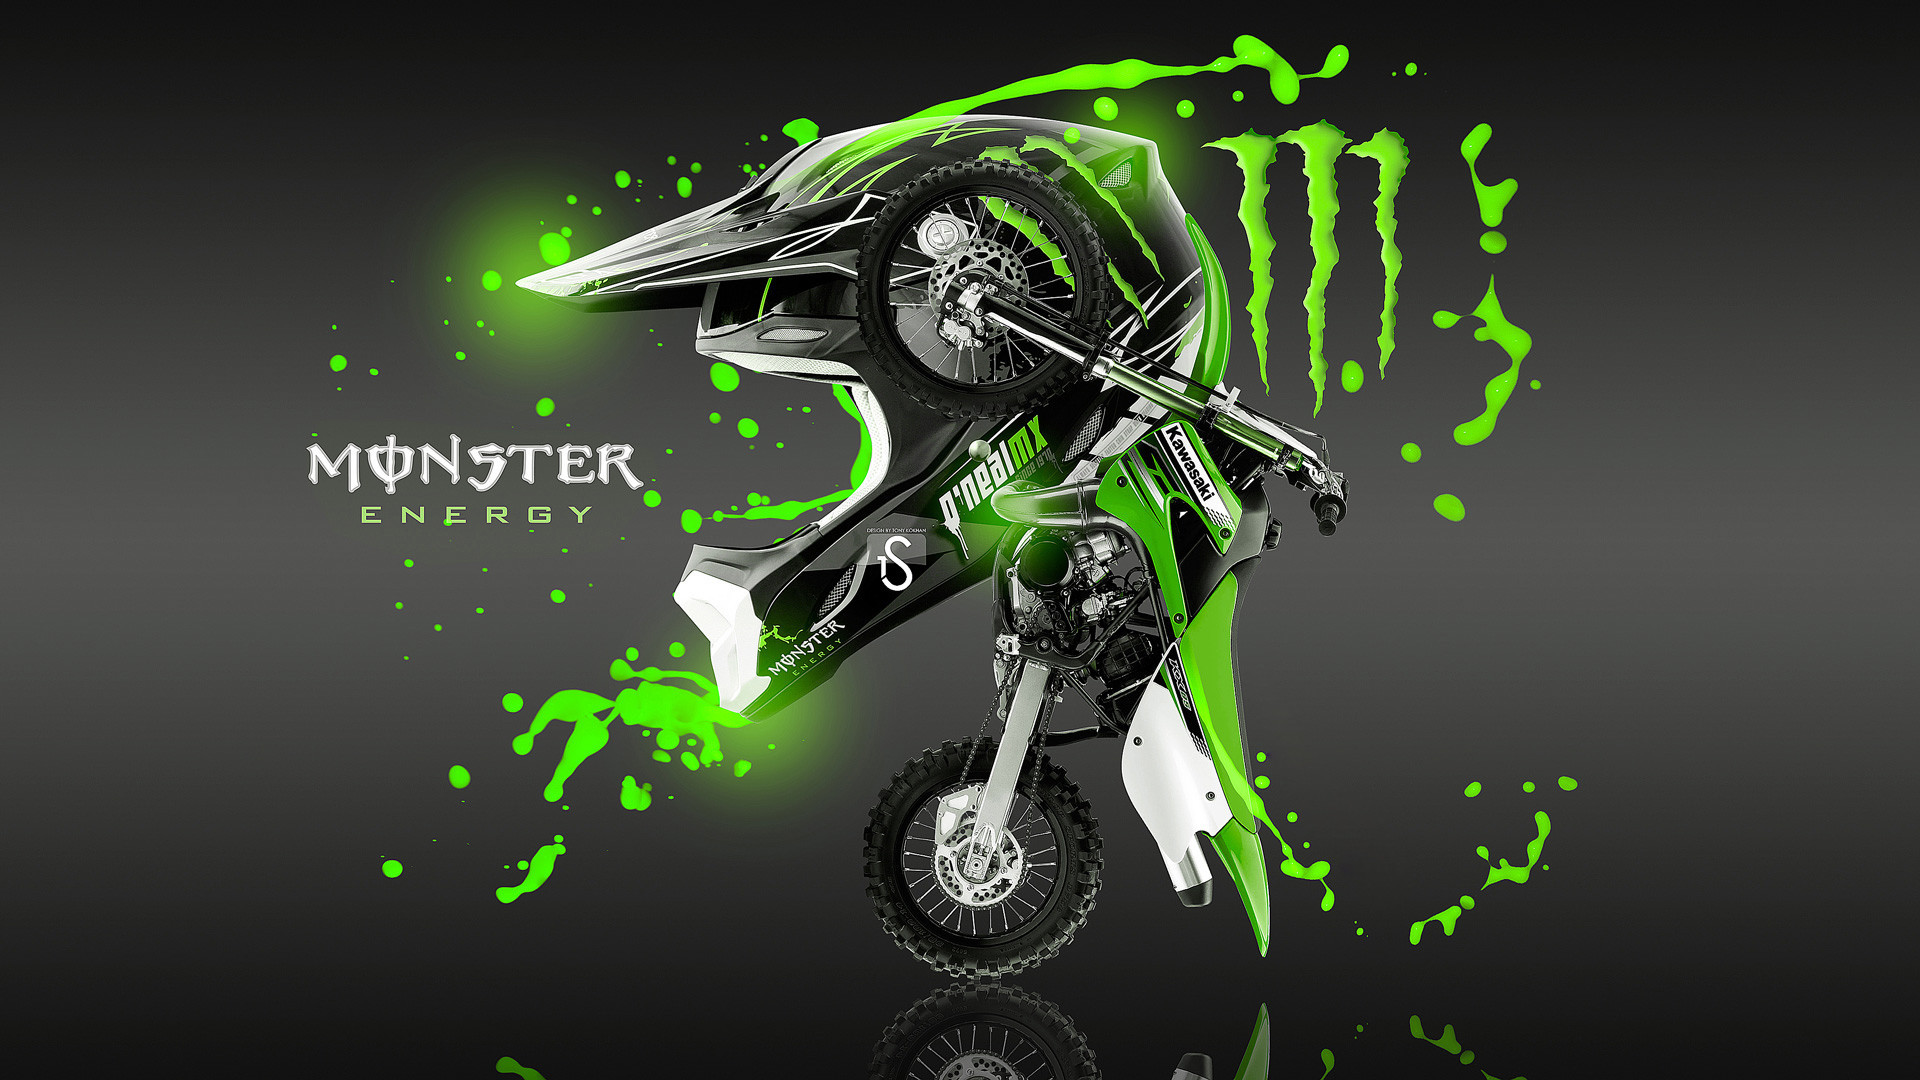 1920x1080  Monster Energy Wallpaper Hd Monster Energy Wallpaper Hd Com K On  Irz Rockstar Wallpapers Hot